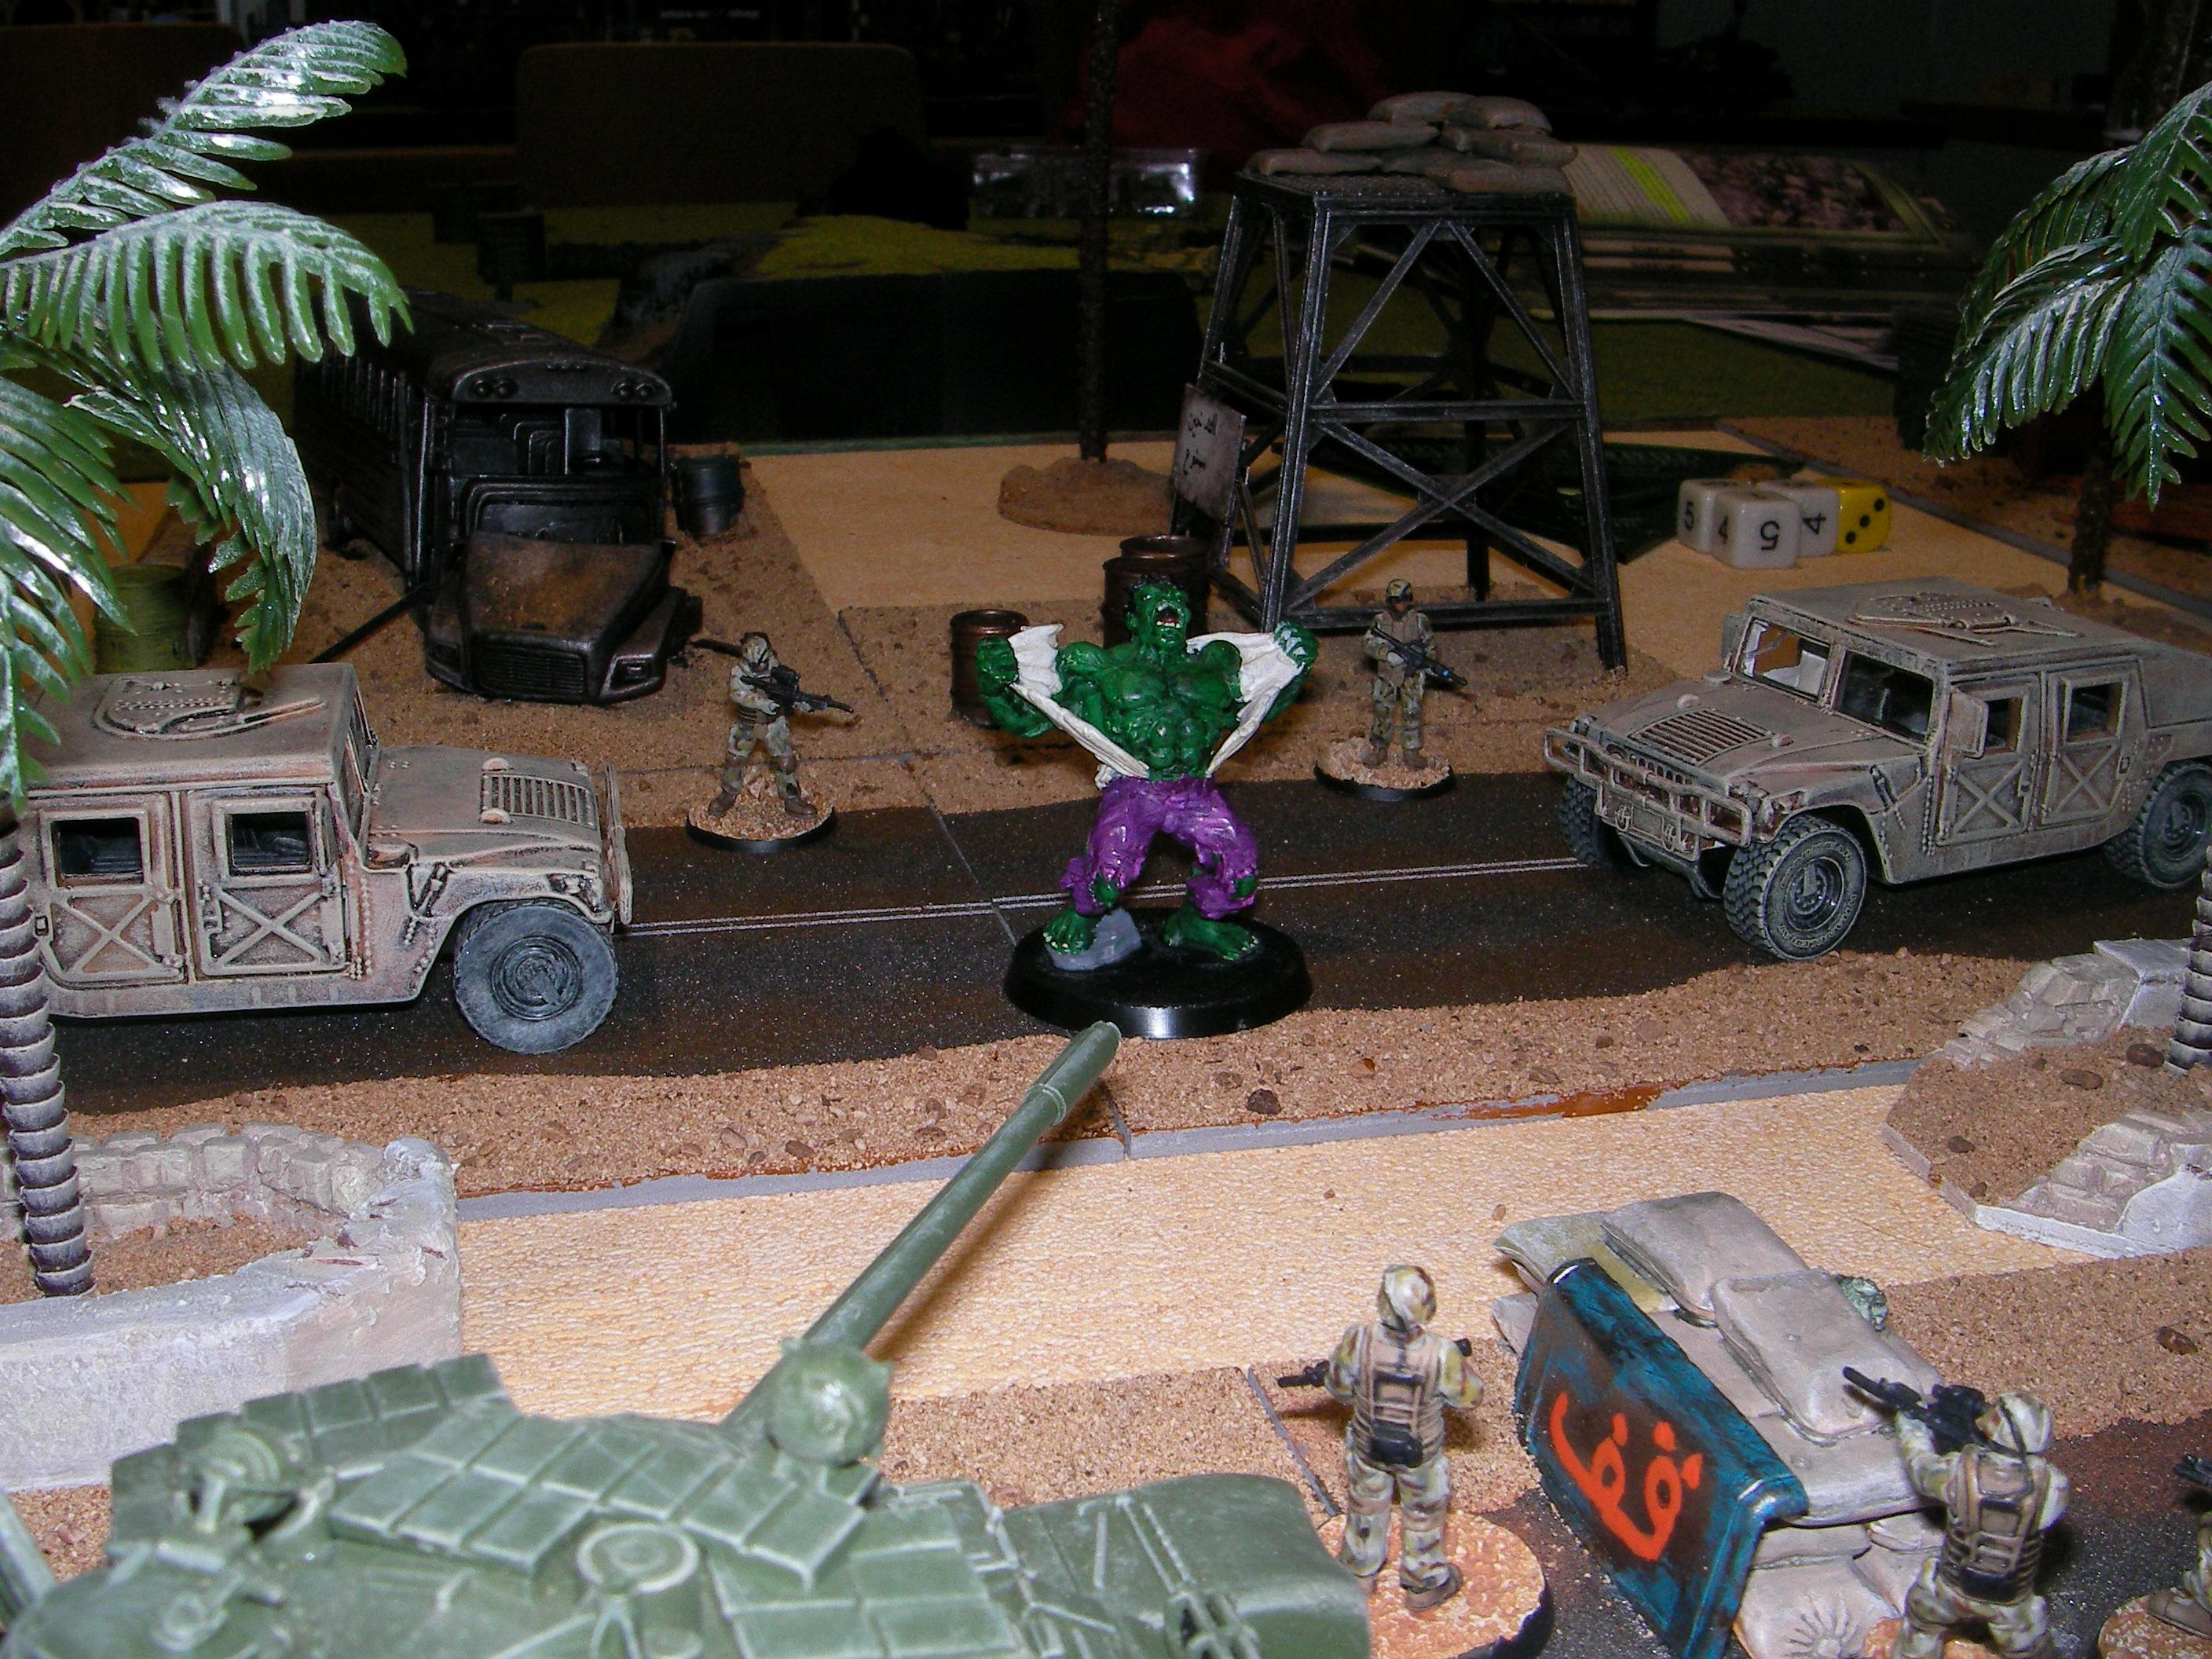 Evolution, Game Table, Heroclix, Iraq, Middle East, Middle Eastern, Modern, Terrain